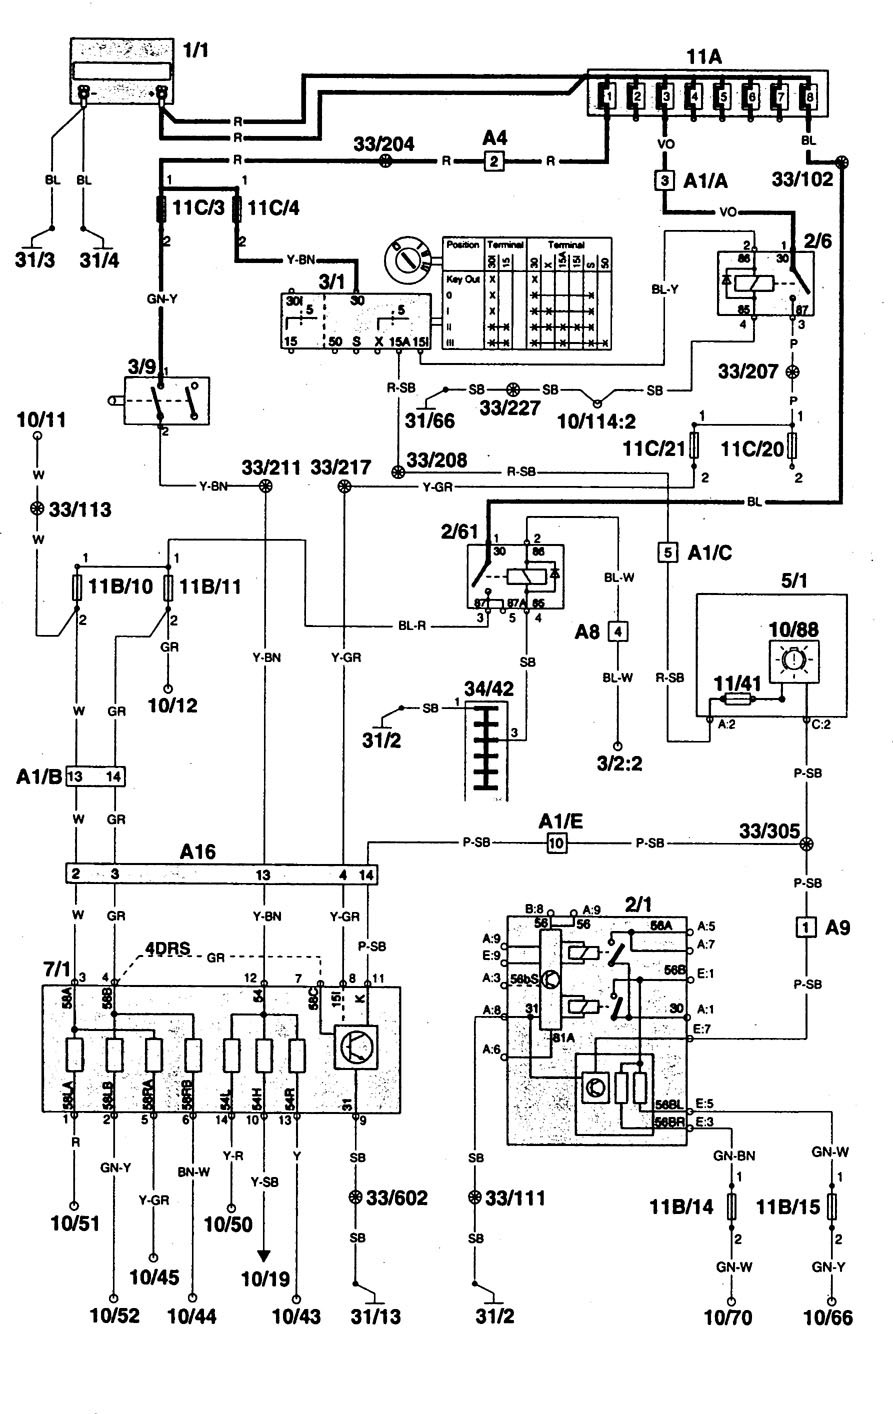 colorful volvo wiring diagrams sketch best images for wiring rh oursweetbakeshop info Volvo L70 Volvo L90E